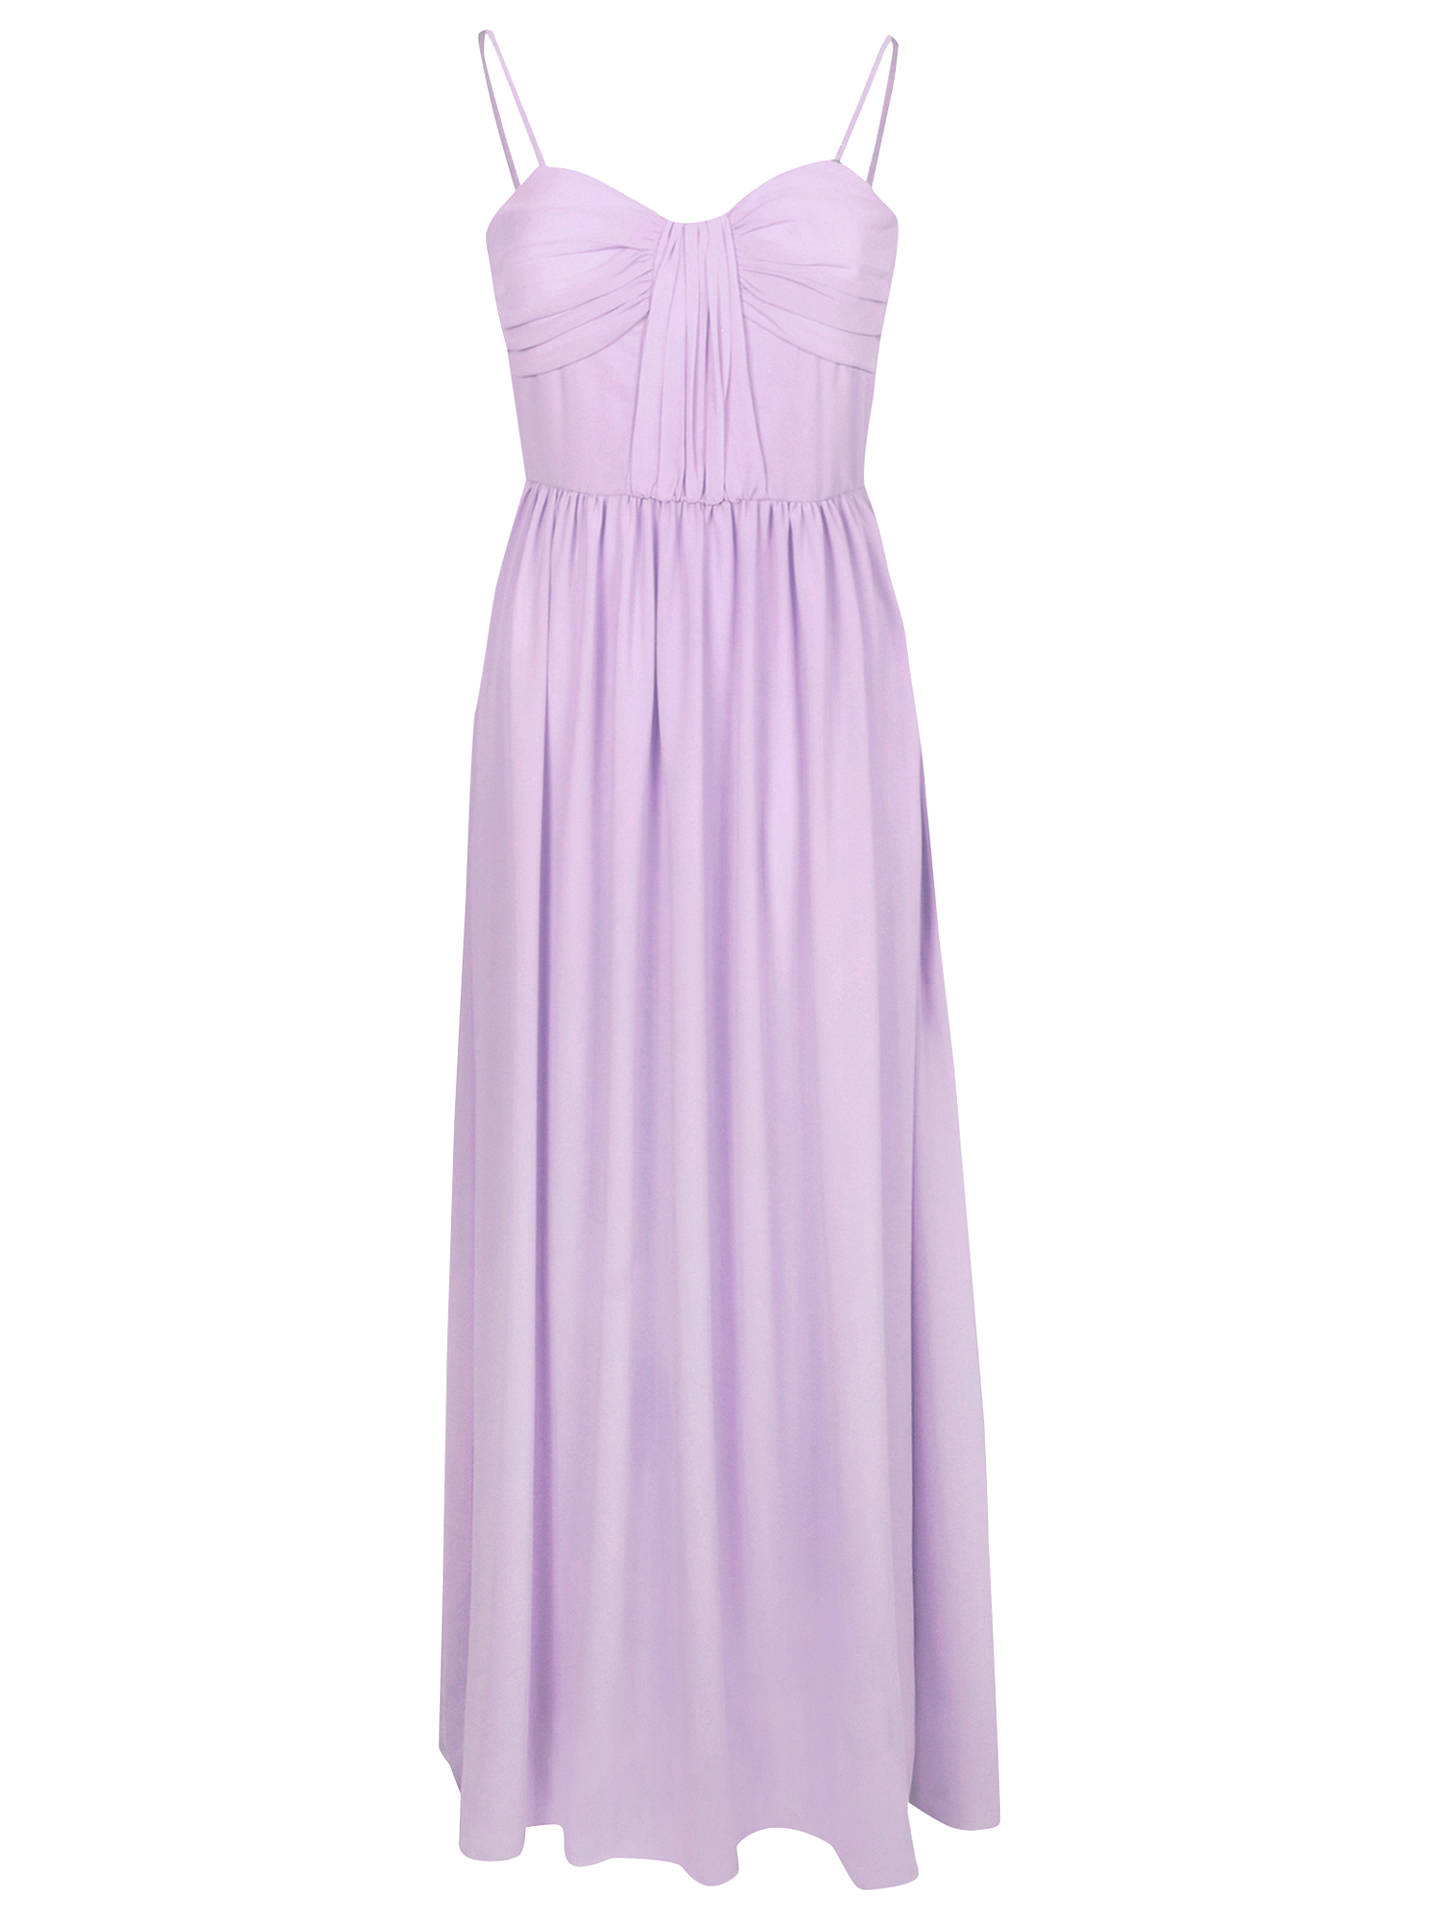 Buy True Decadence Bow Pleat Maxi Dress, Light Pink, 16 Online at johnlewis.com